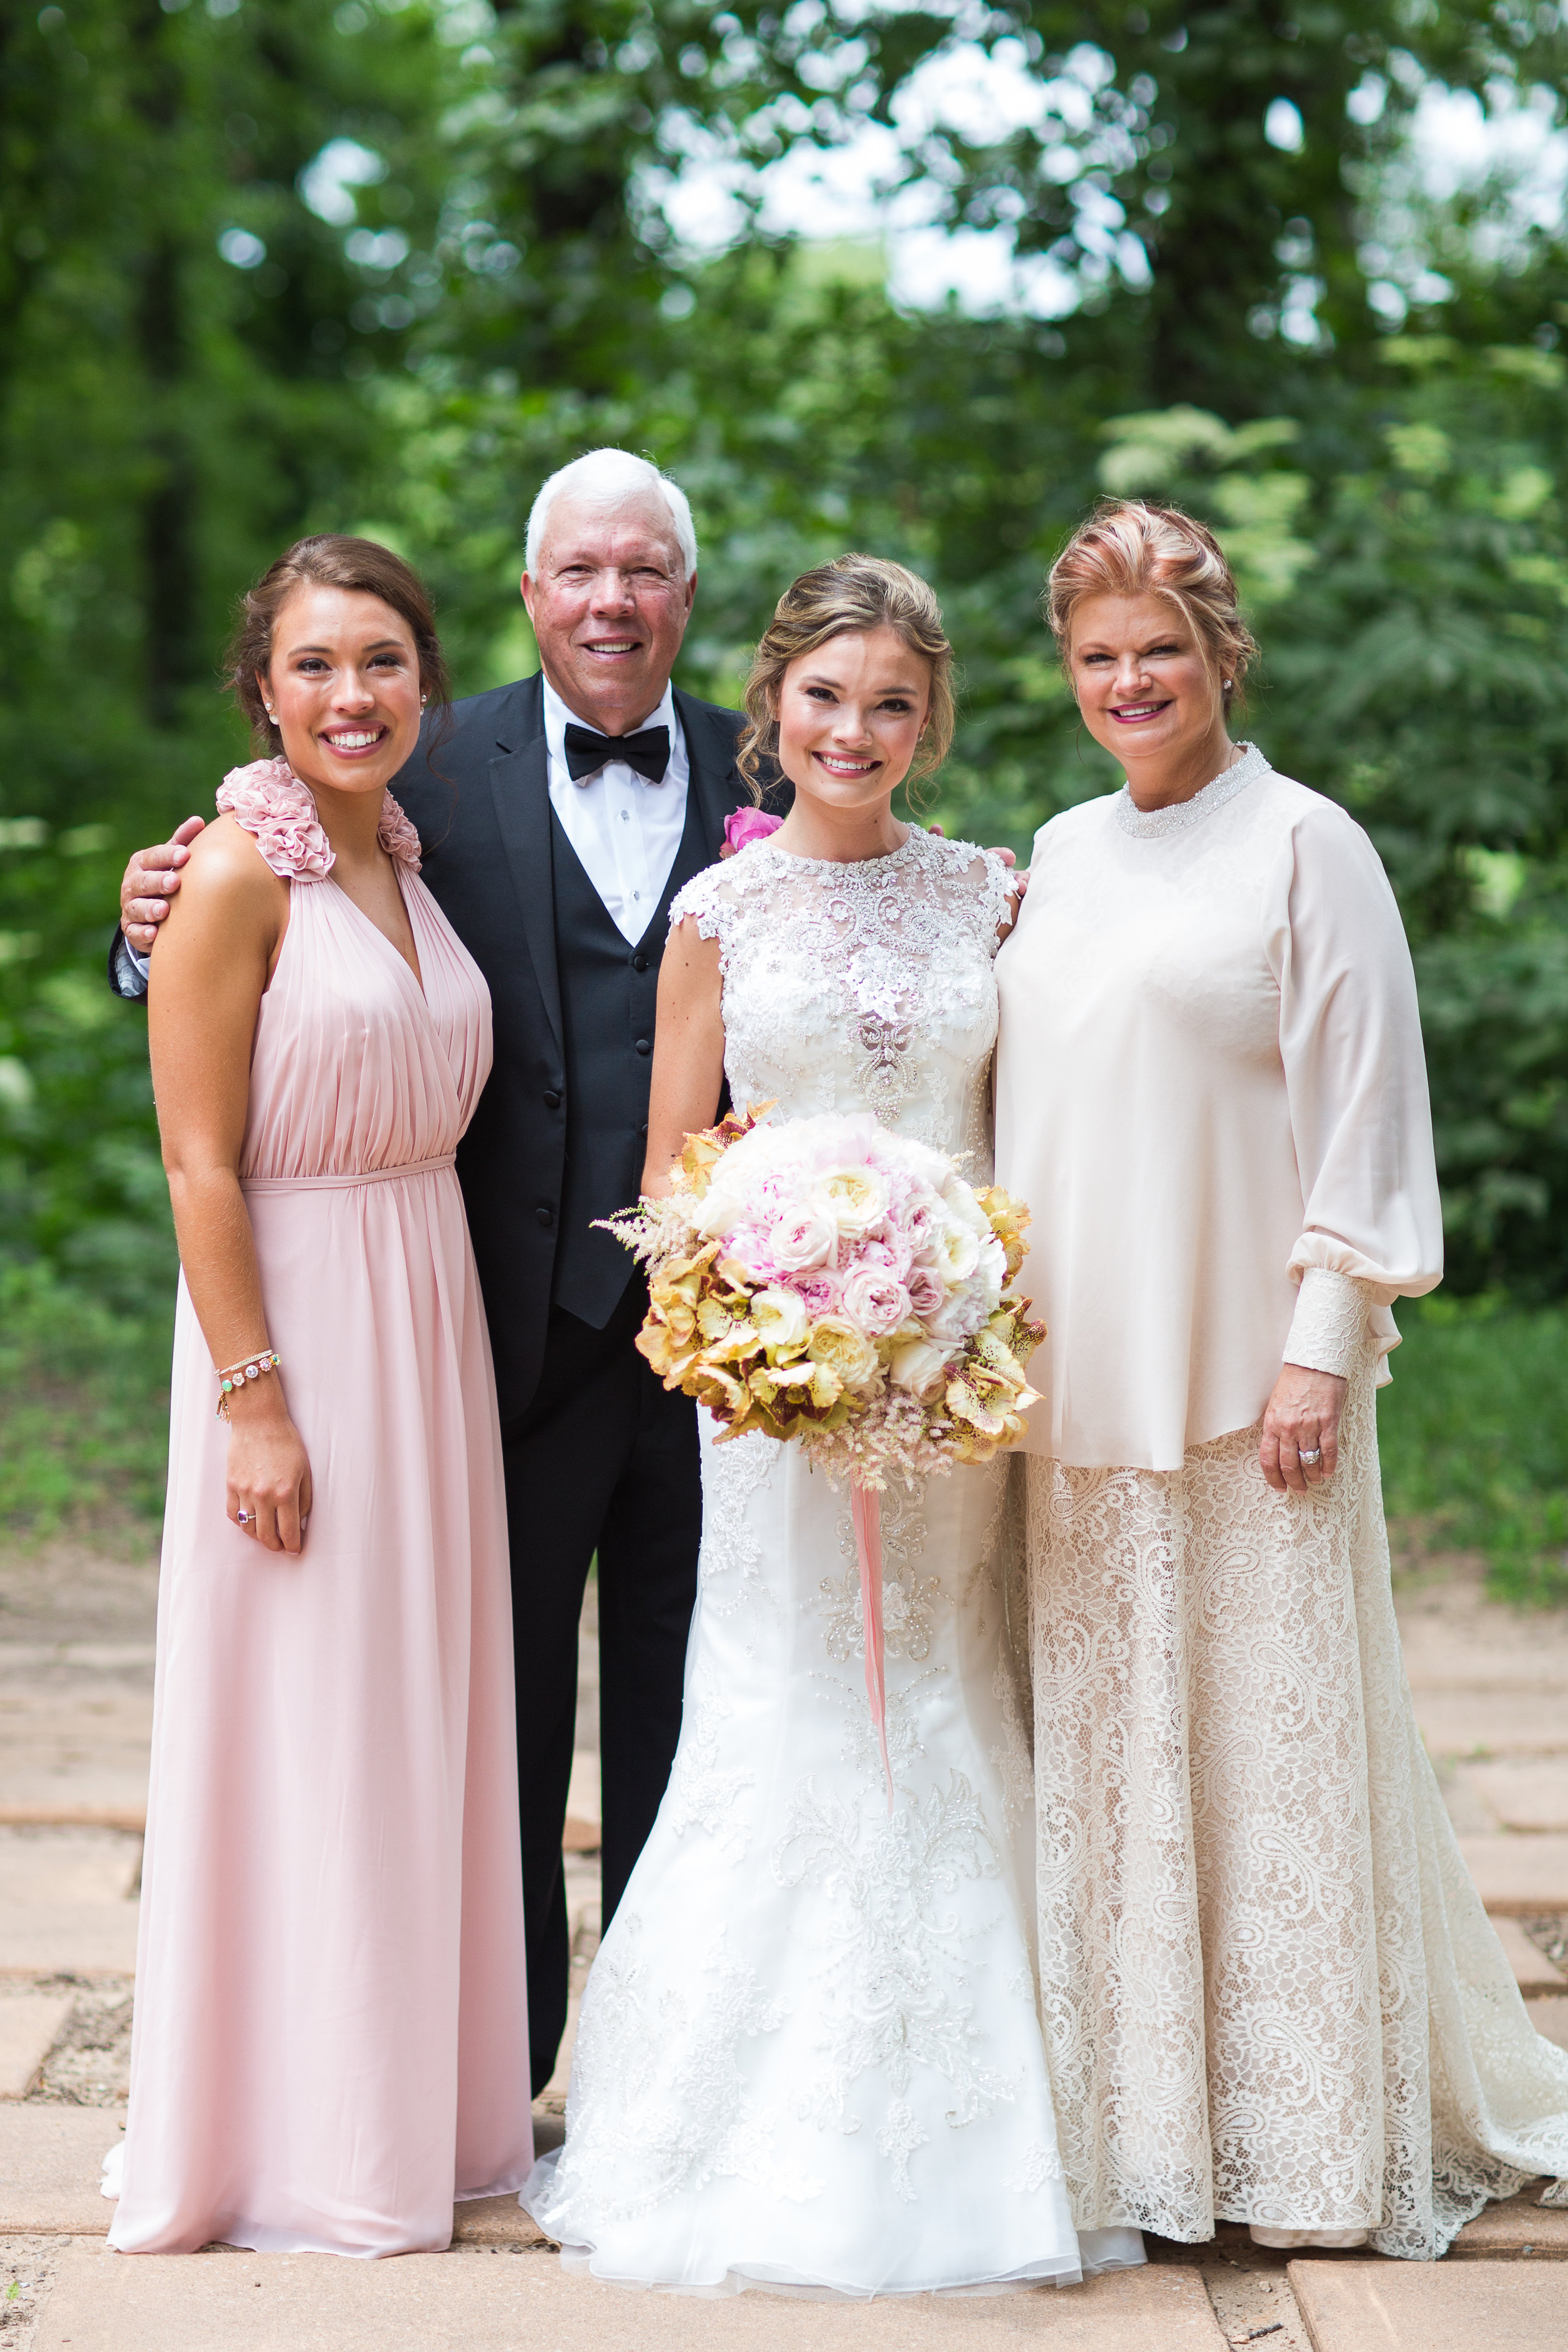 151 Blake & Bailor Wedding.jpg